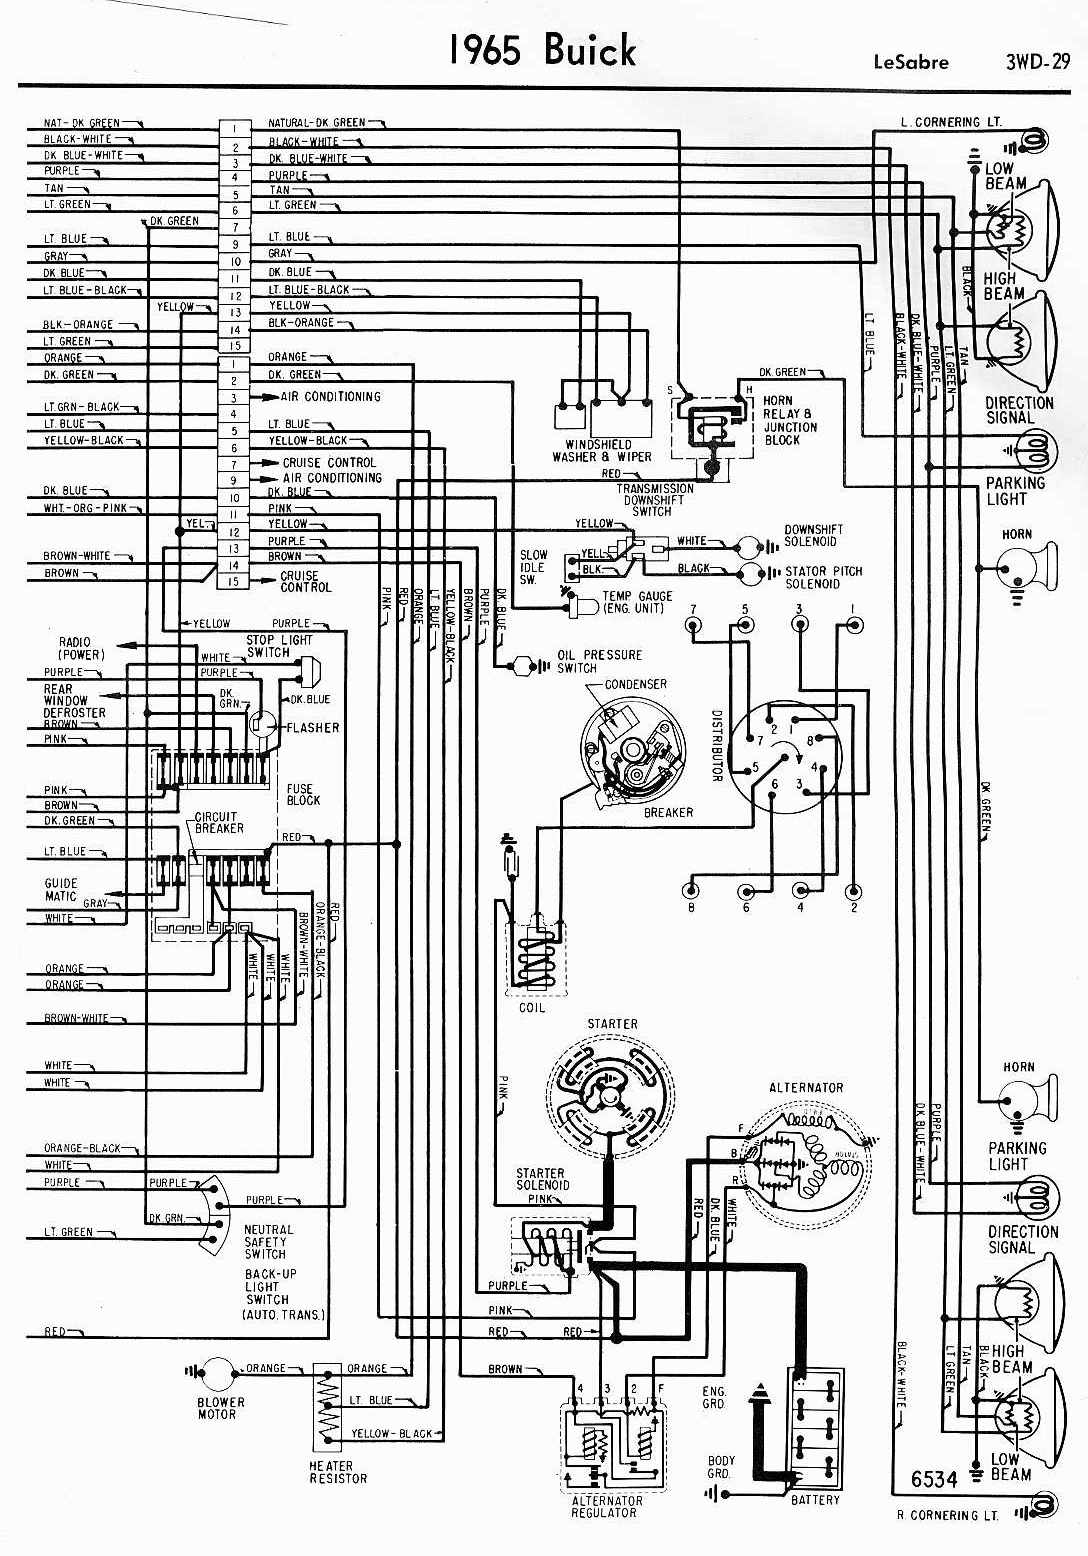 medium resolution of 1967 buick electra wiring diagram schematic wiring diagram1967 buick electra wiring diagram best wiring library1967 buick